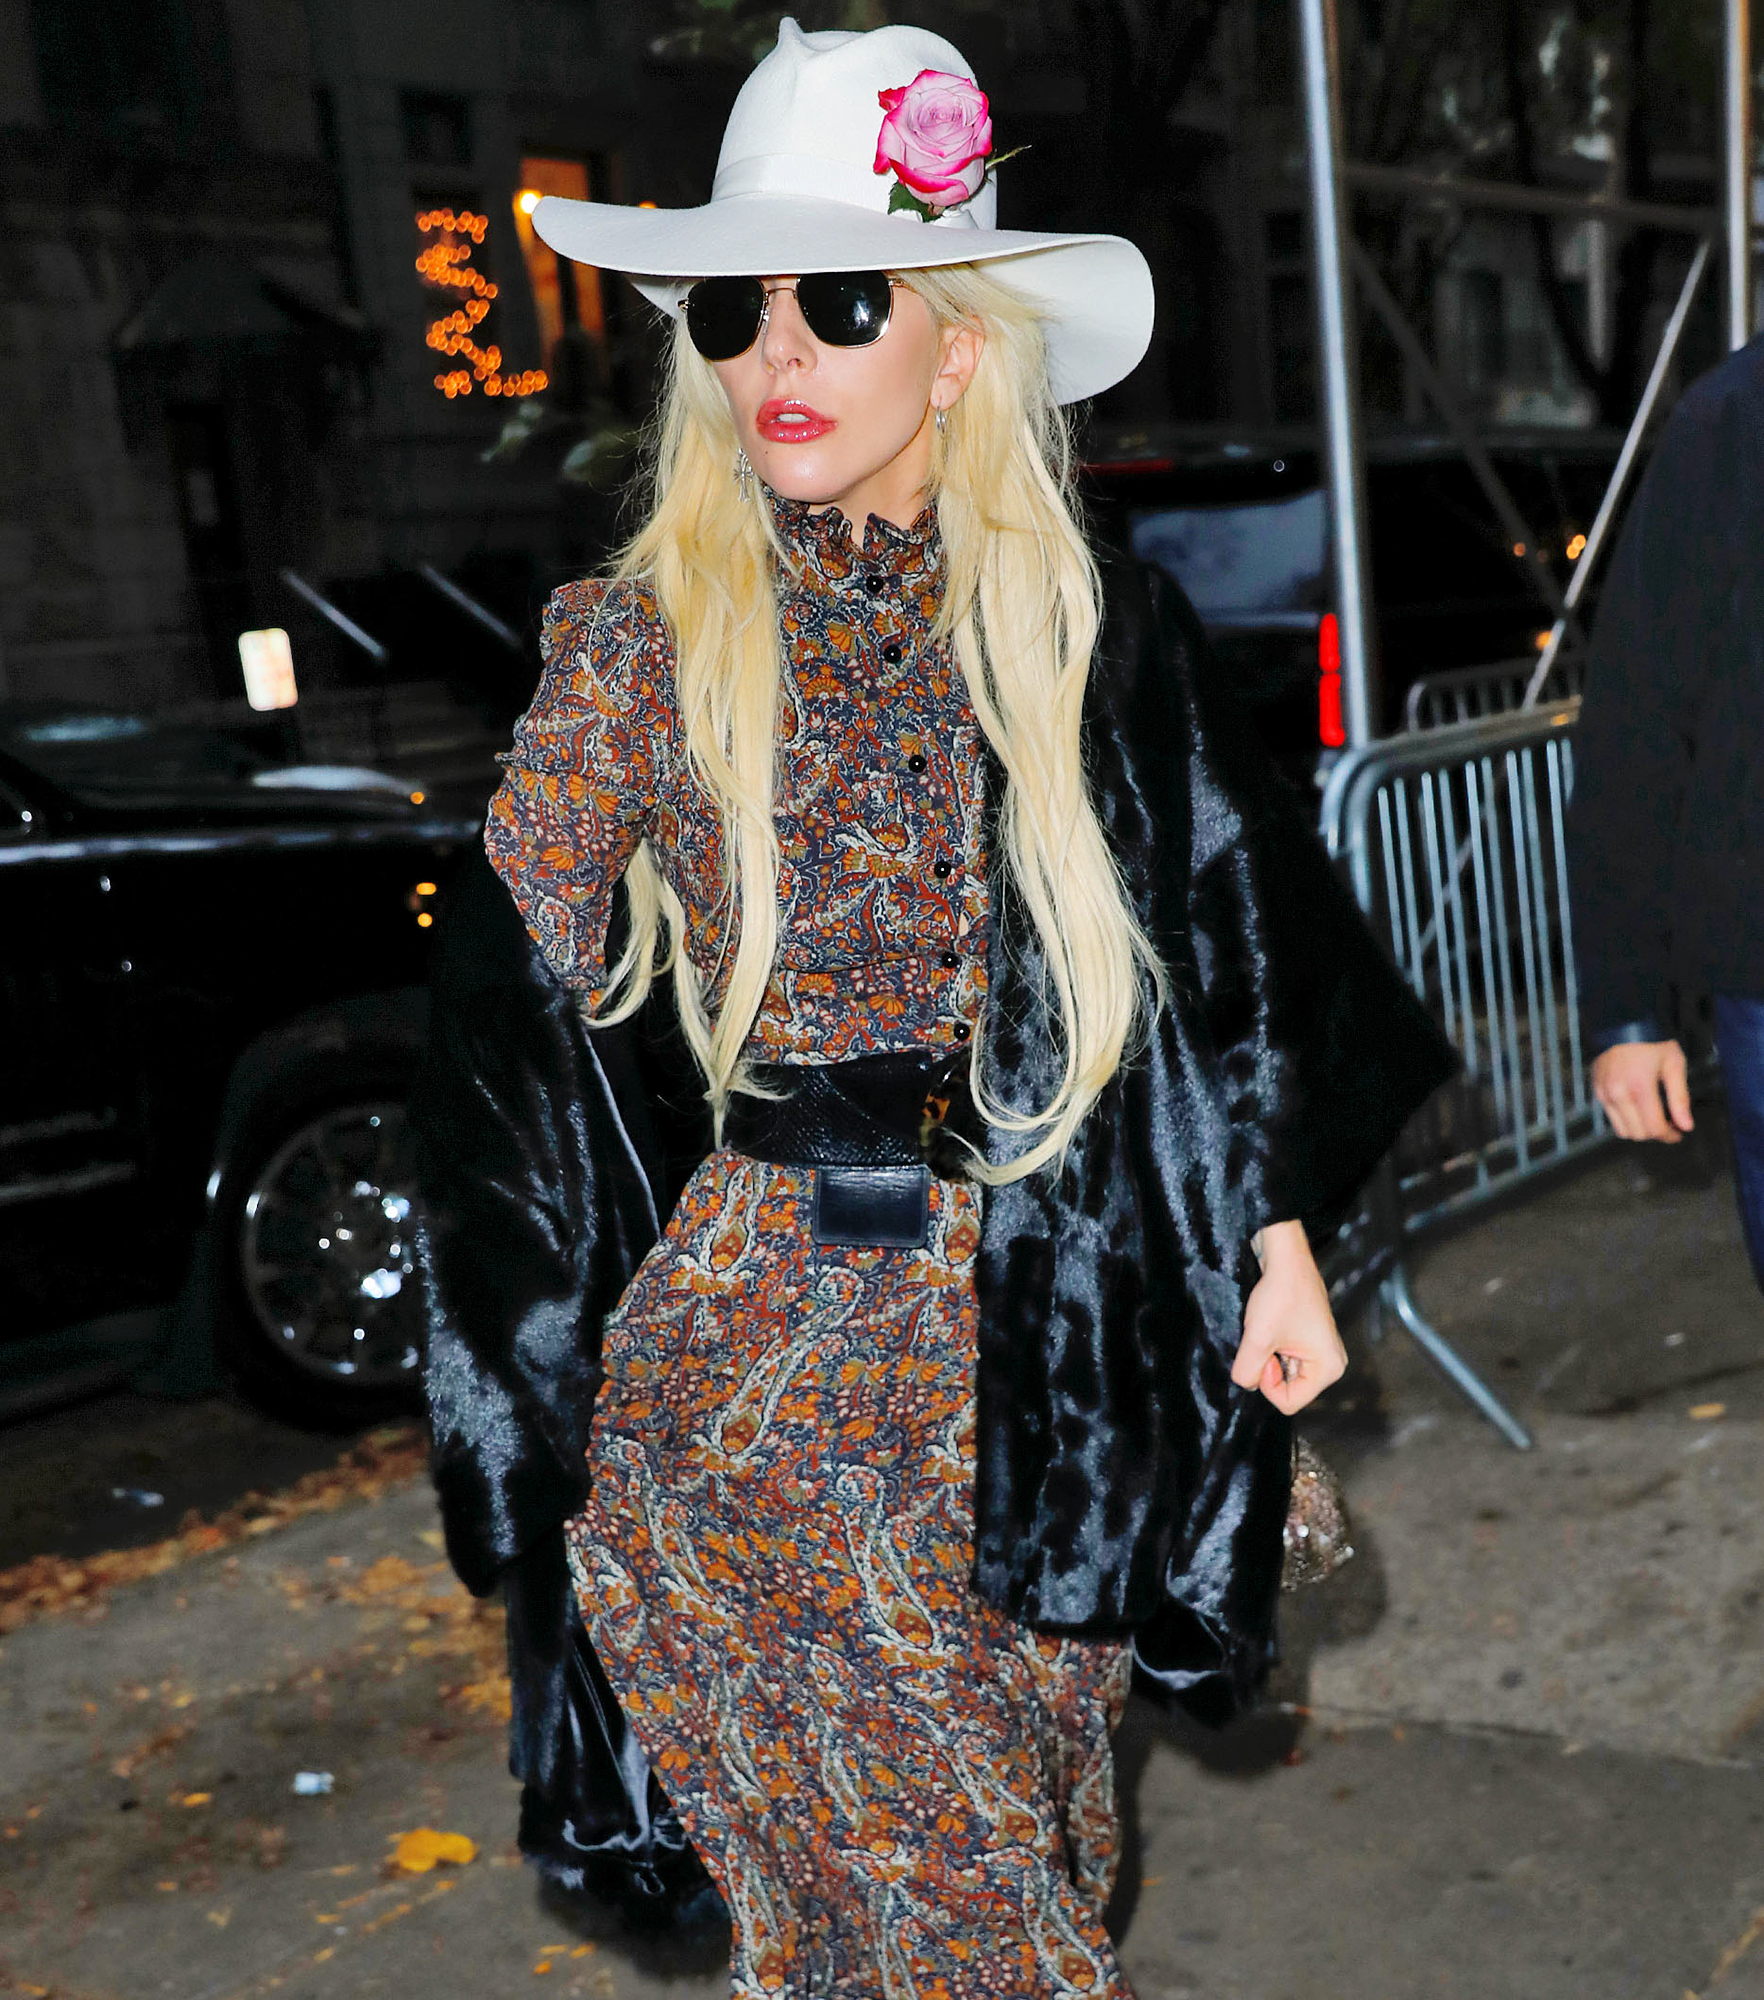 Lady Gaga steps out of her apartment for Thanksgiving festivities in NYC